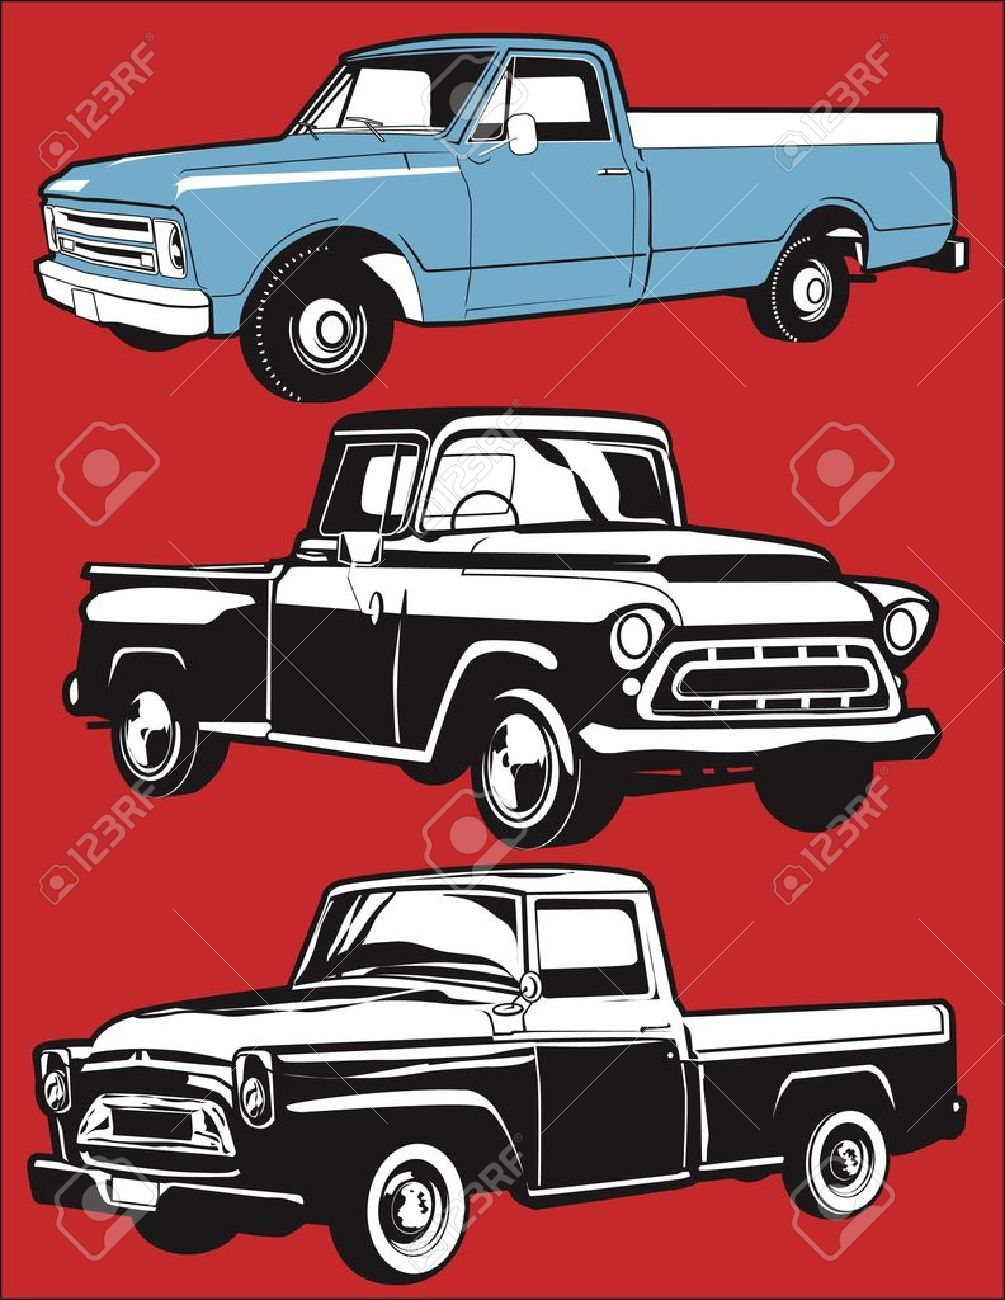 old red truck images u0026 stock pictures royalty free old red truck